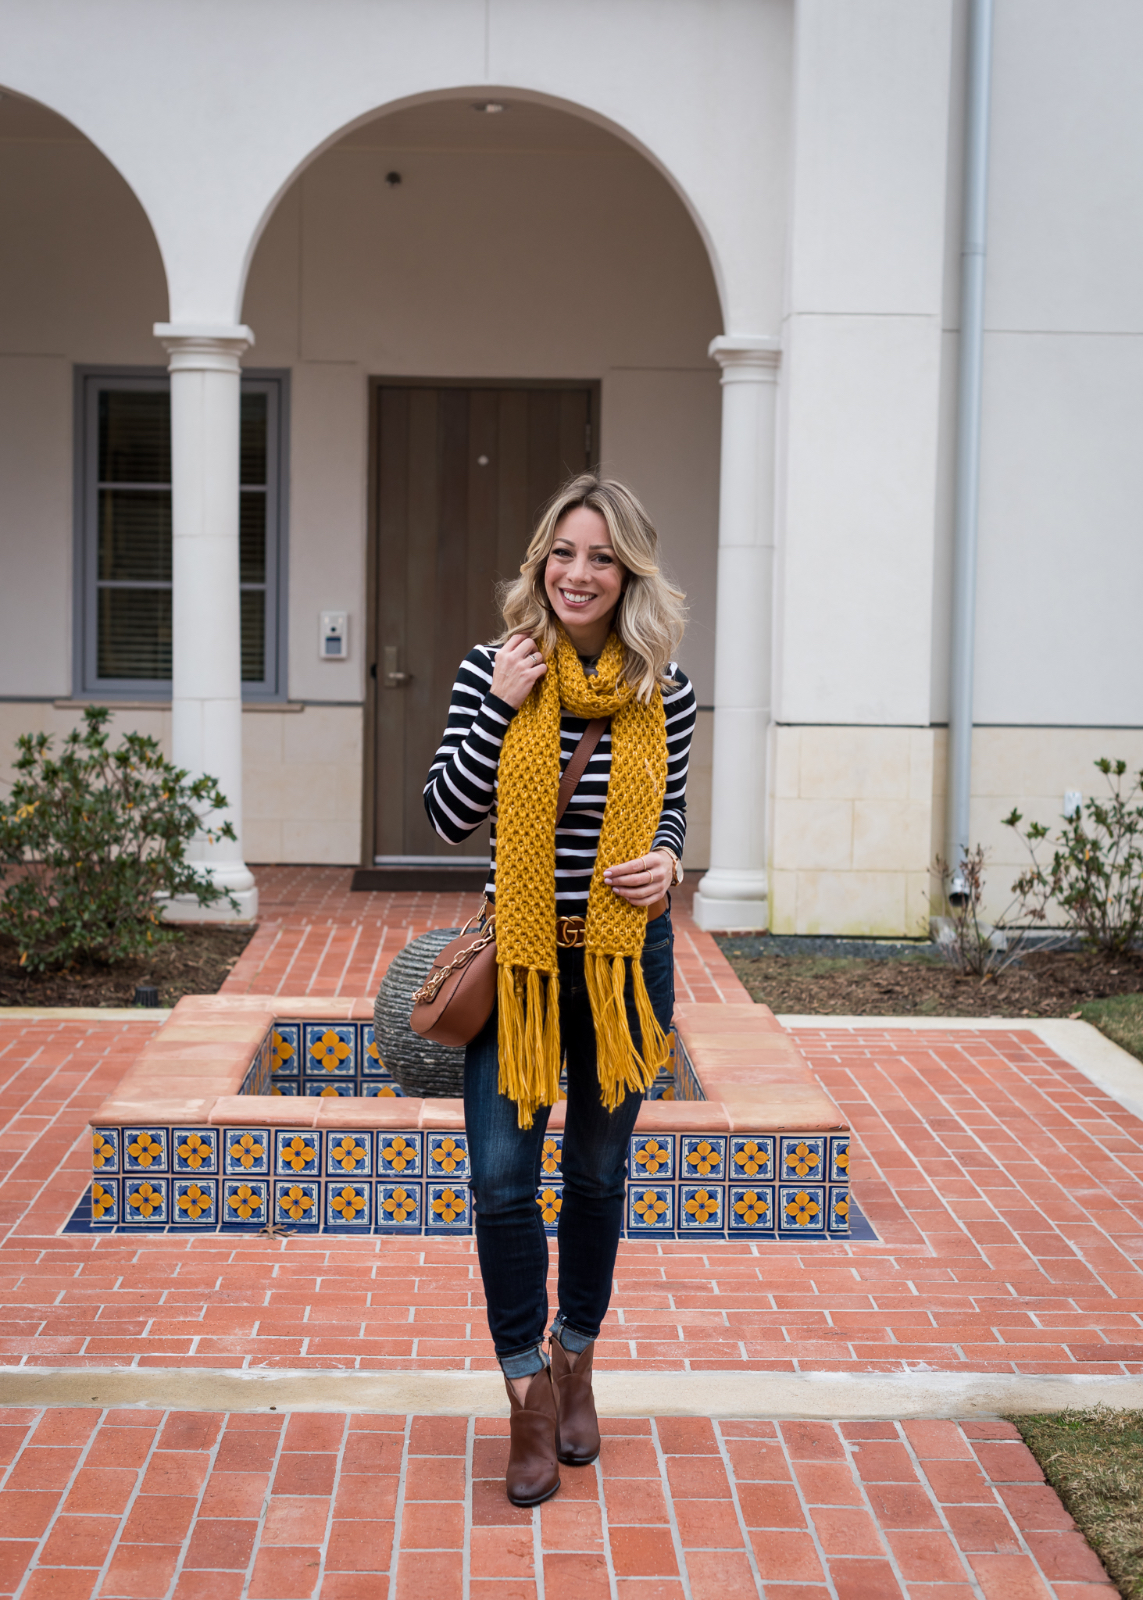 Cute winter outfit with peacoat and yellow scarf 1